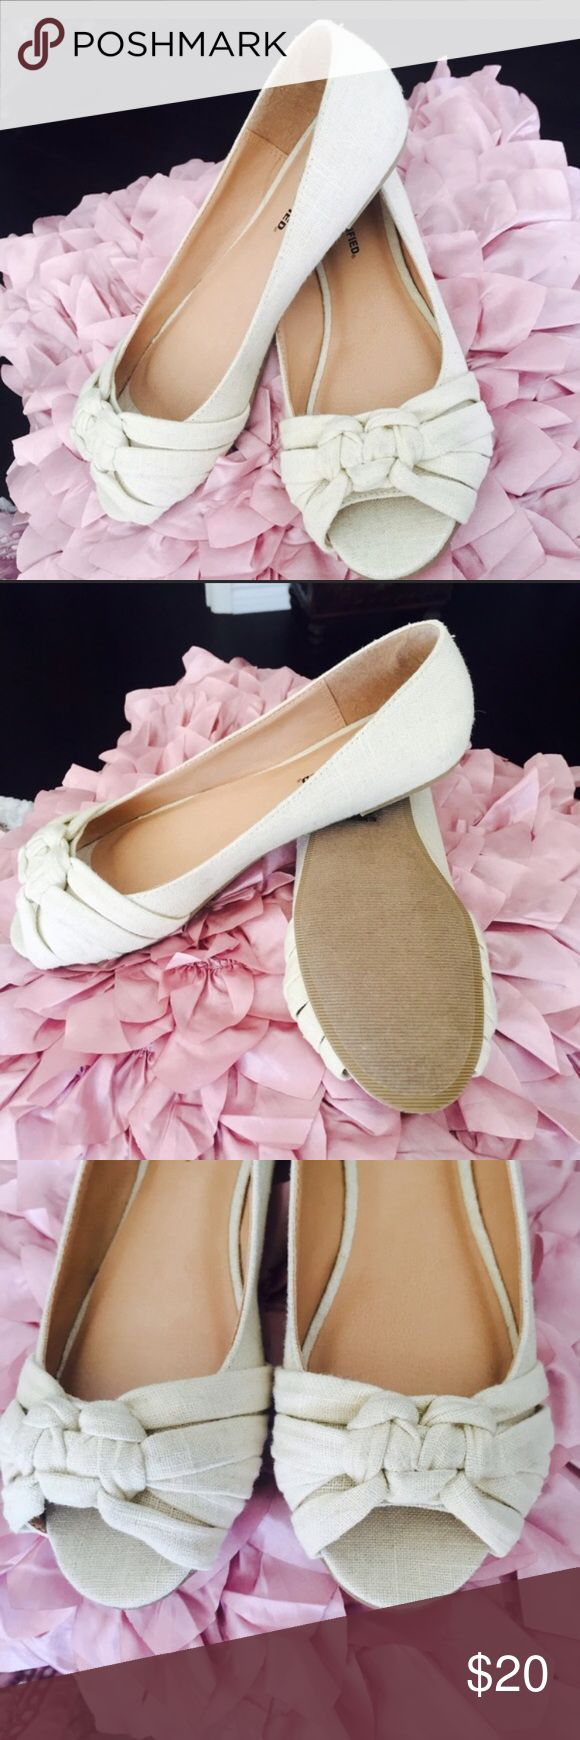 New in box open toe linen ballet flat Off white natural color. Really cute for spring through fall. There is a little glue probably from the sole on the inside side of one of the shoes but it is barely noticeable. Shoes Flats & Loafers